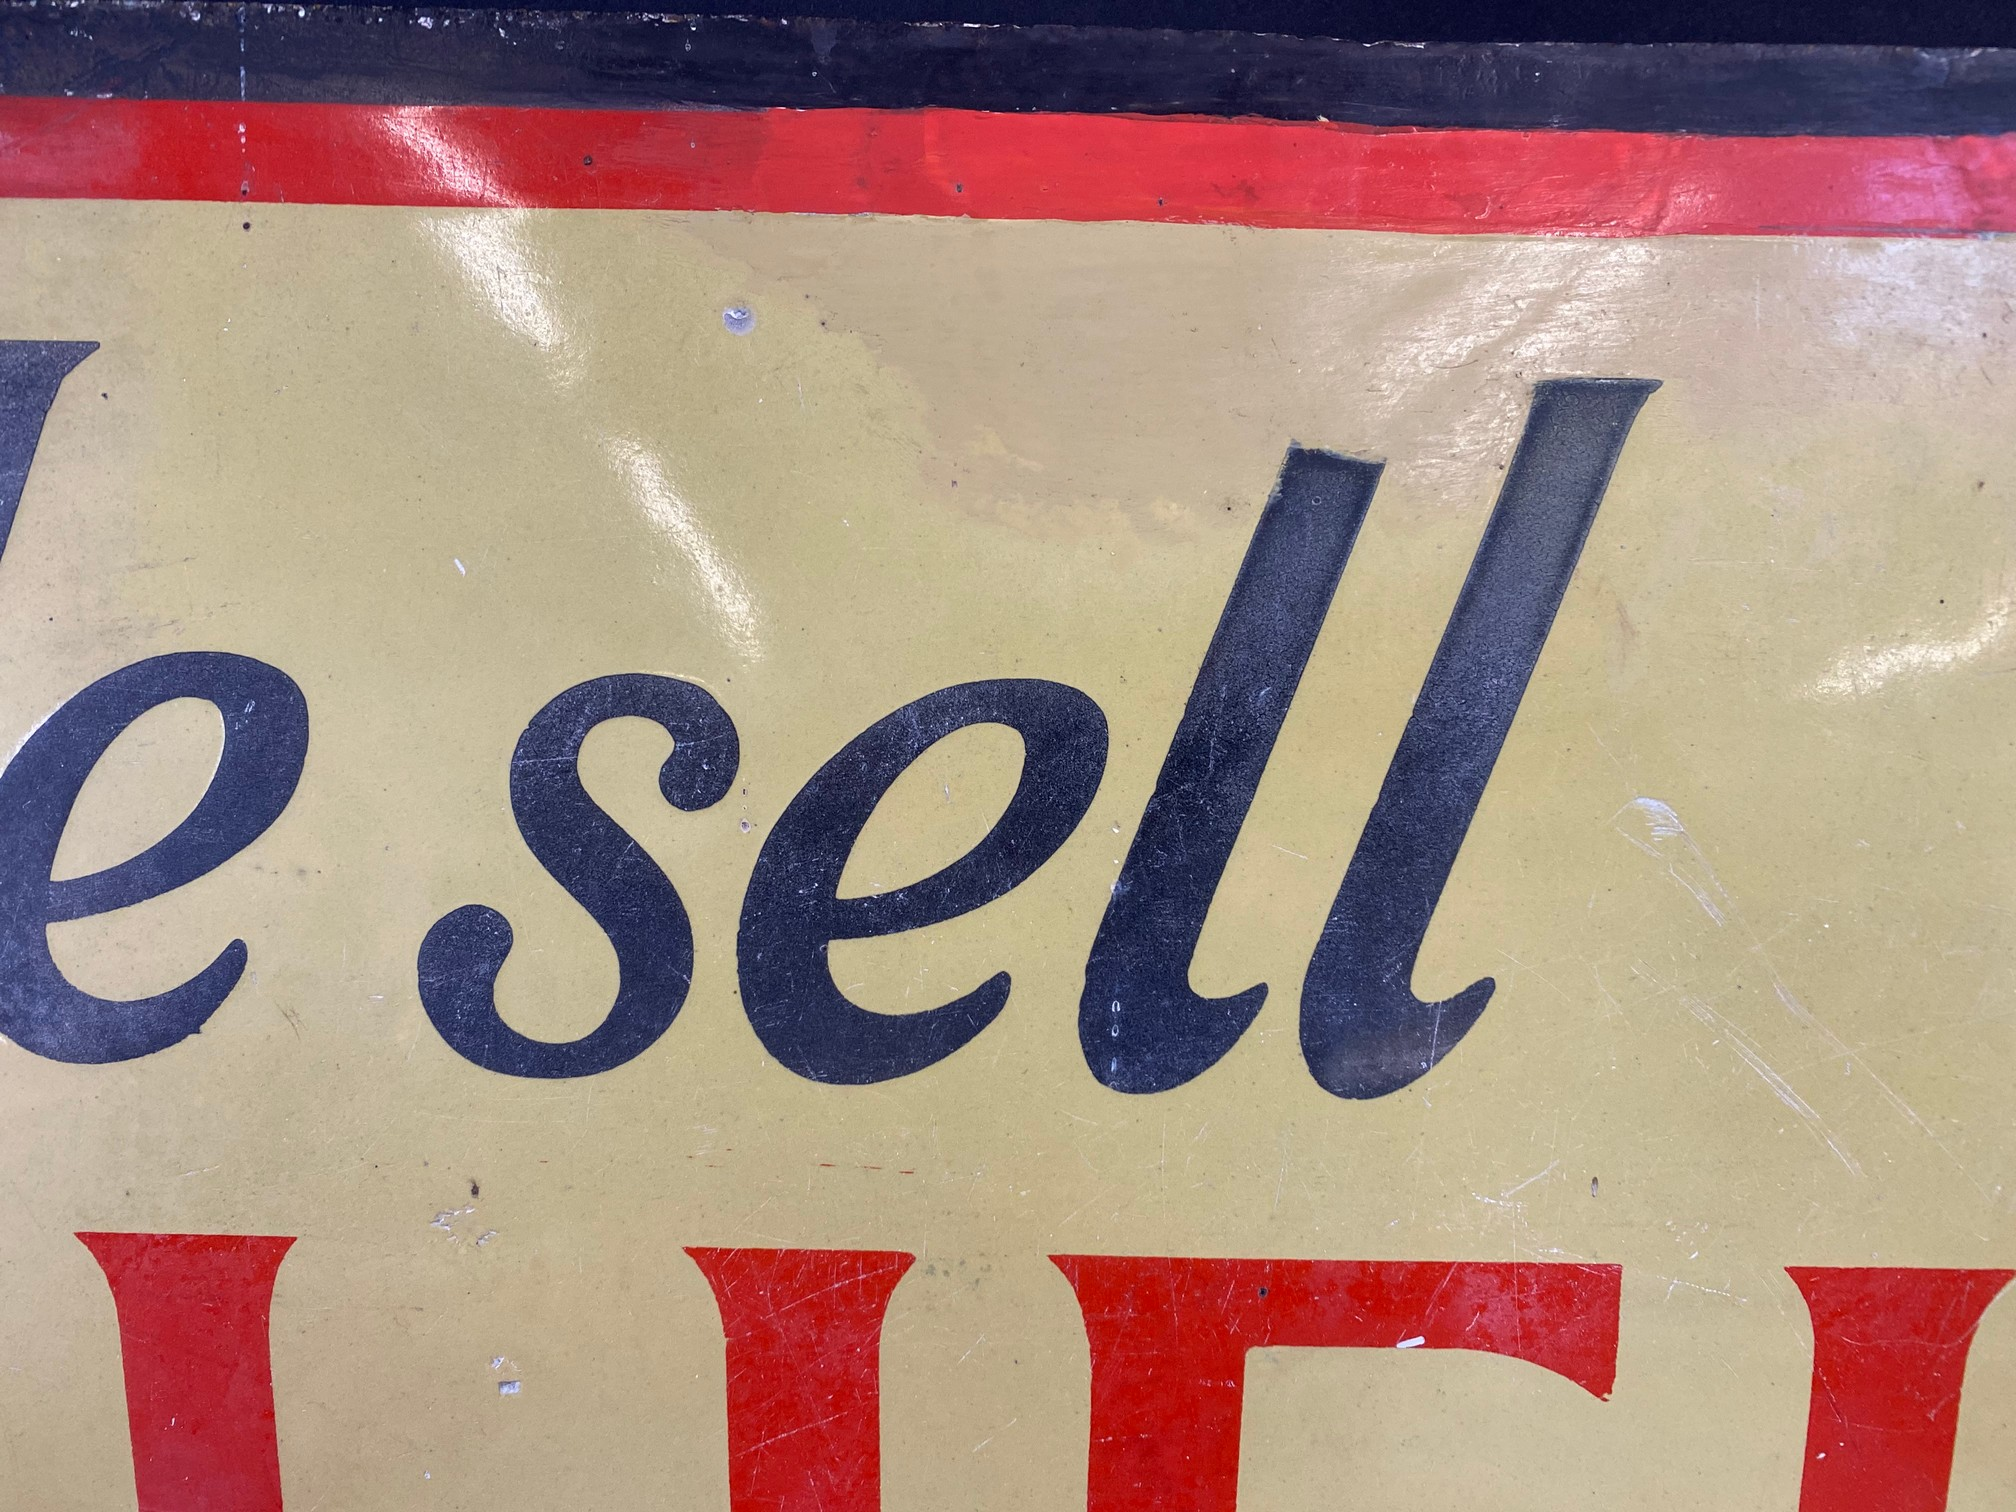 A Shell Lubricating Oils 'Every Drop Tells' pictorial enamel sign with some patches of - Image 3 of 8